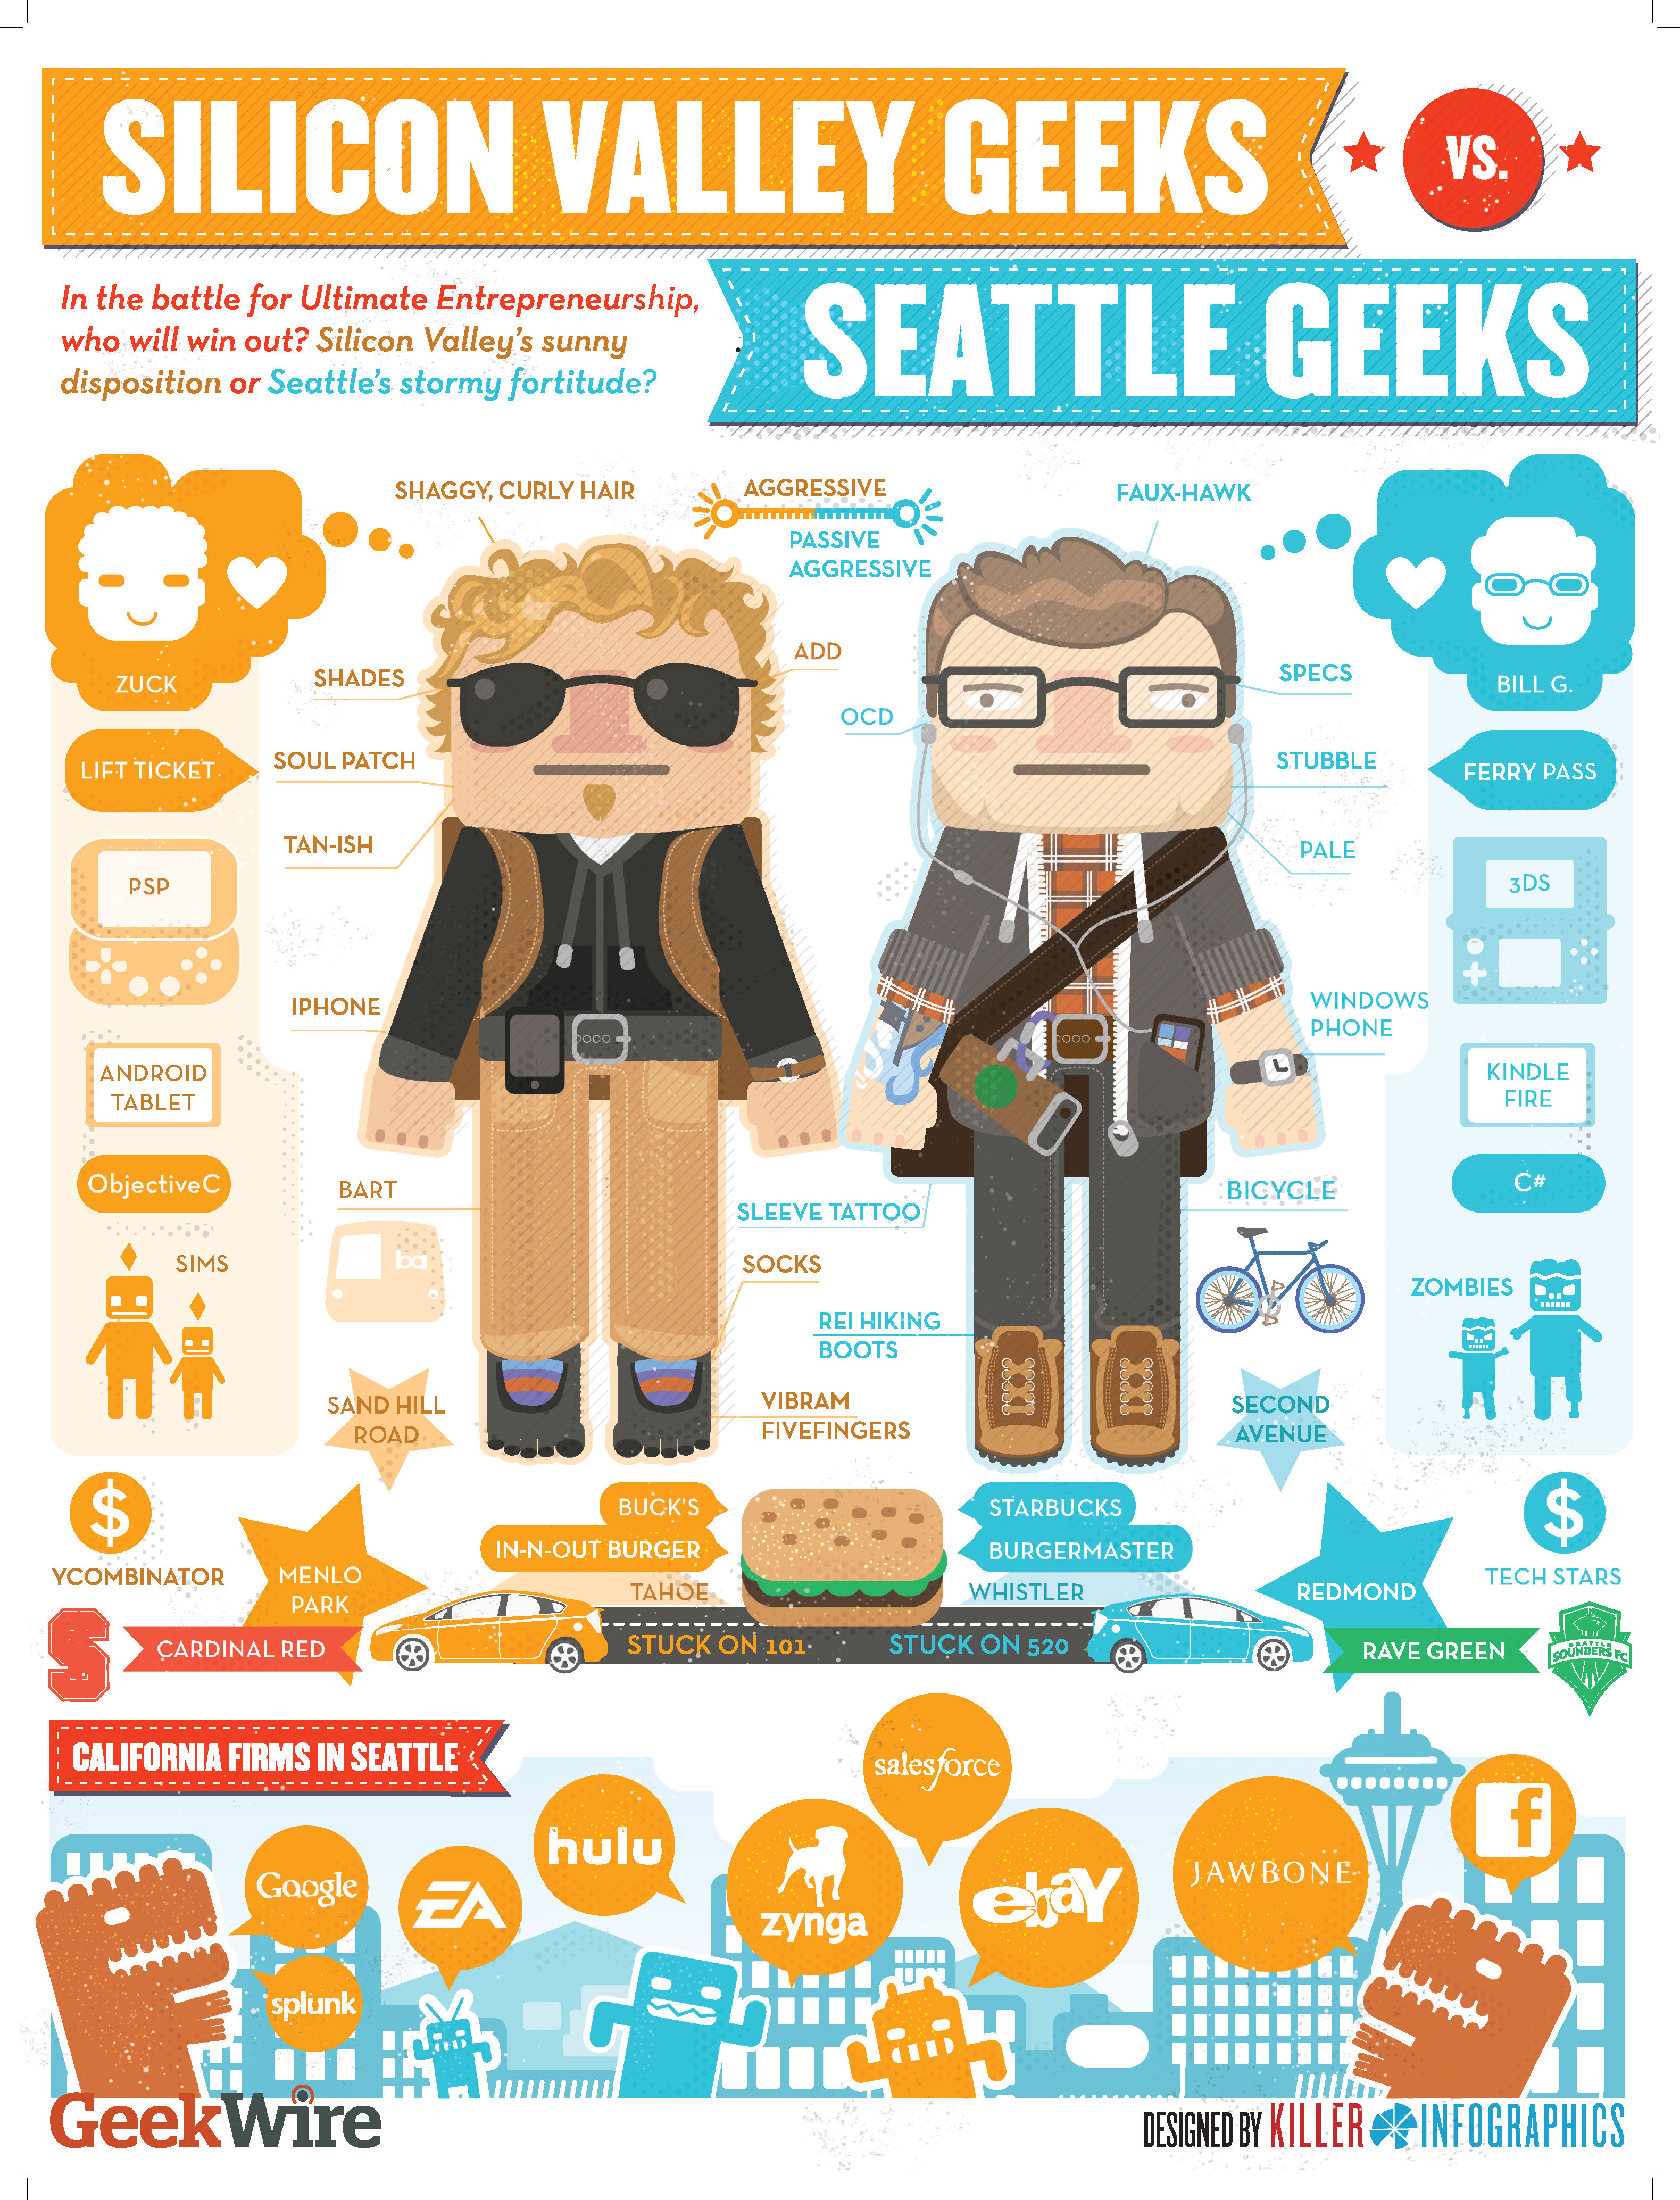 Silicon Valley vs. Seattle Geeks infographic poster